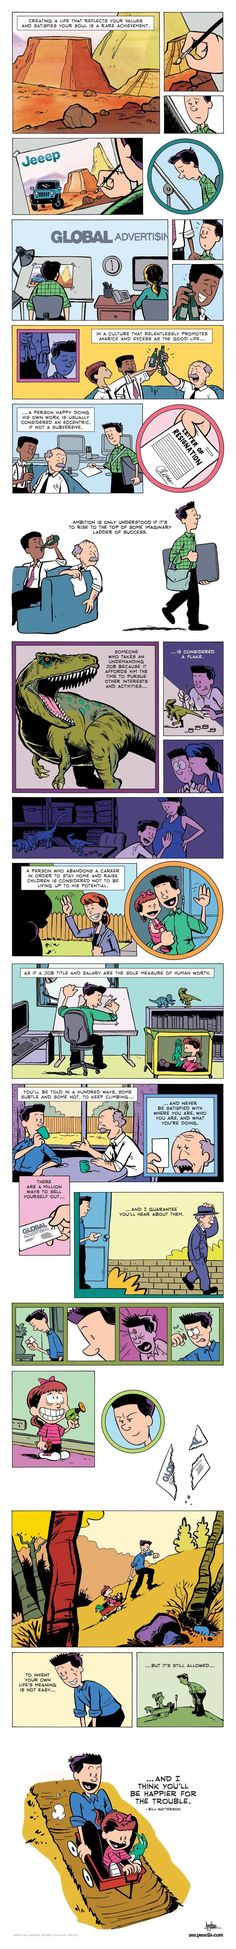 An incredible comic in honor of Bill Watterson.